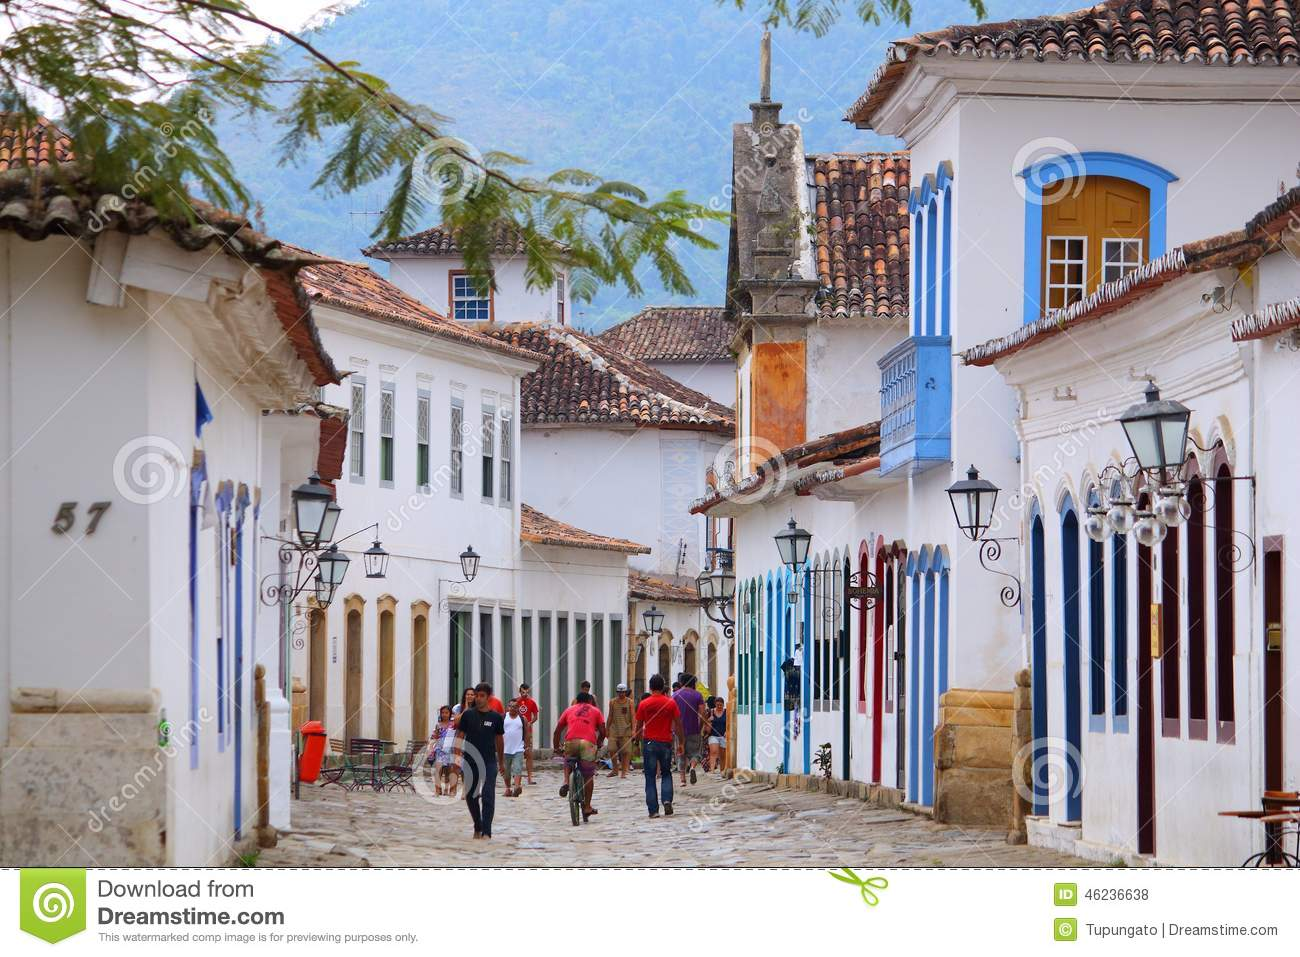 PARATY, BRAZIL - OCTOBER 14, 2014: People walk in the Old Town of ...